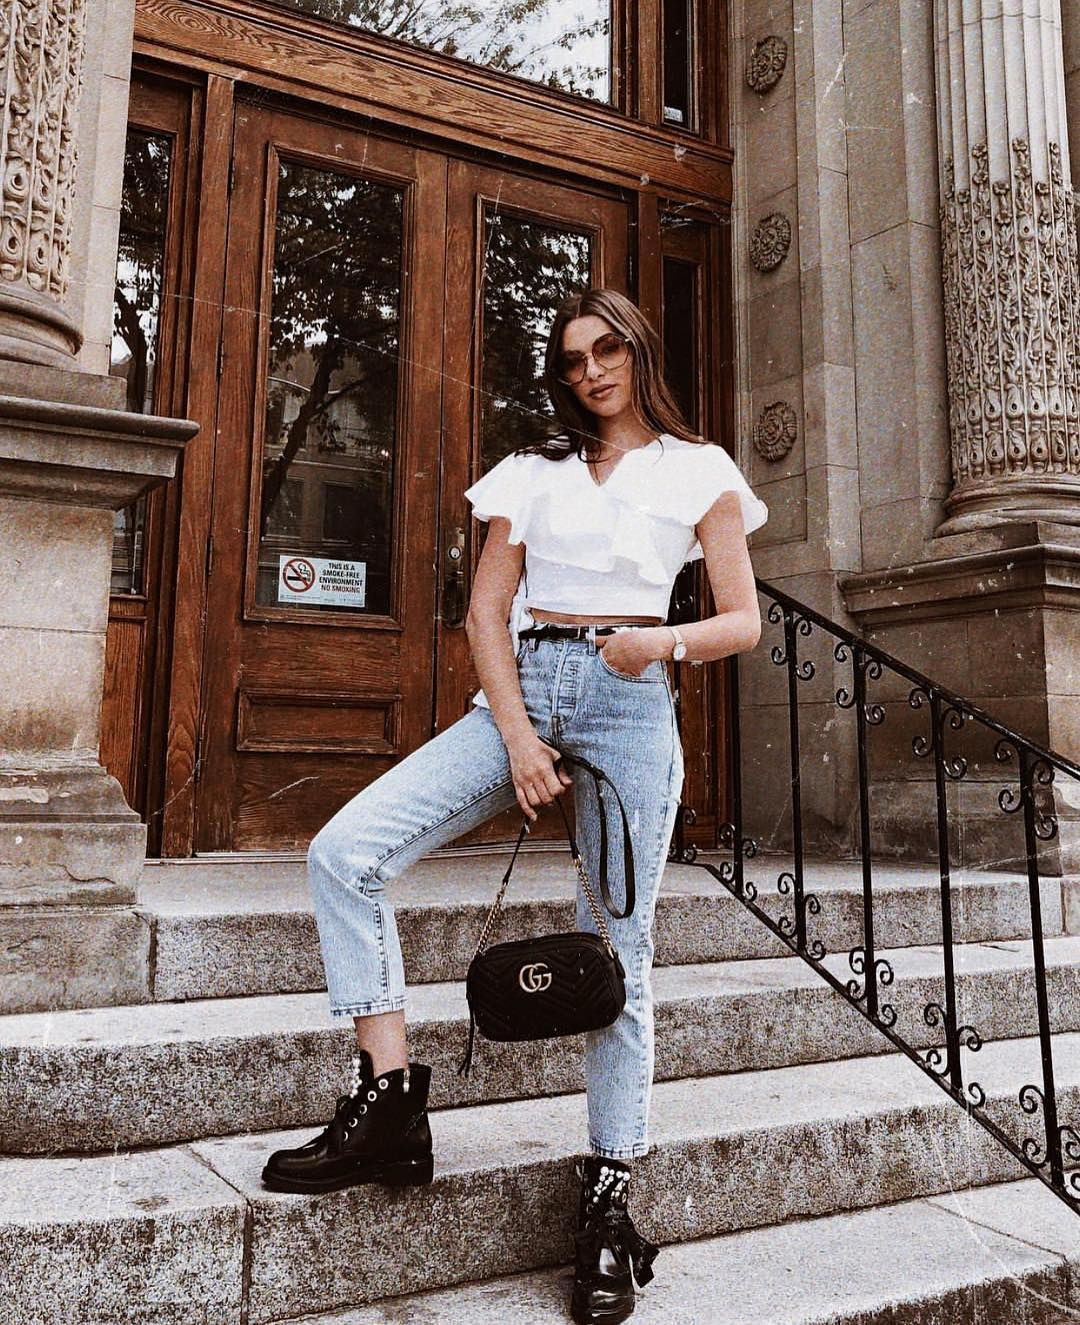 Ruffled White Crop Top And Wash Blue Jeans With Black Combat Boots For Spring 2019